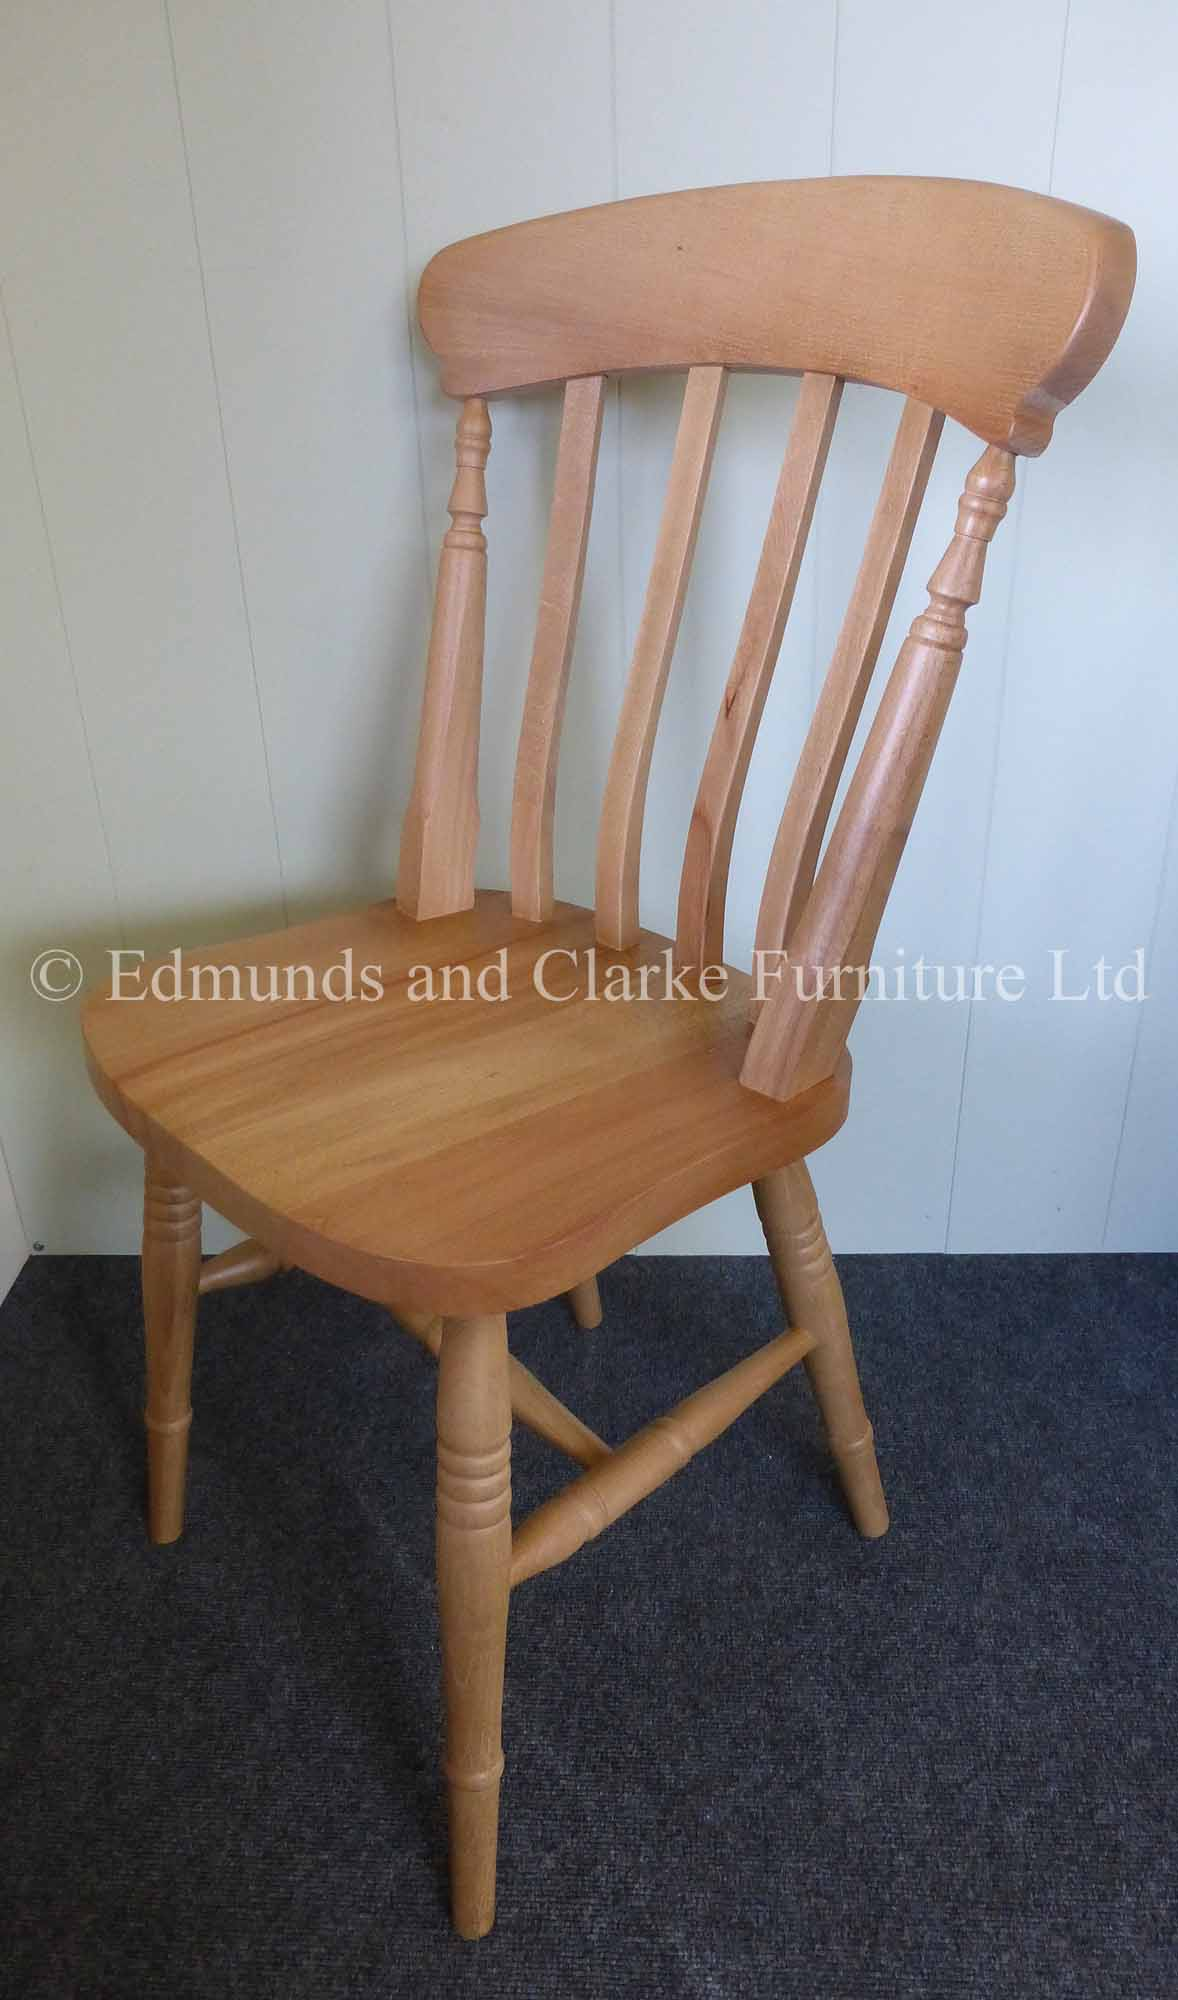 Slat farmhouse style side chaIr